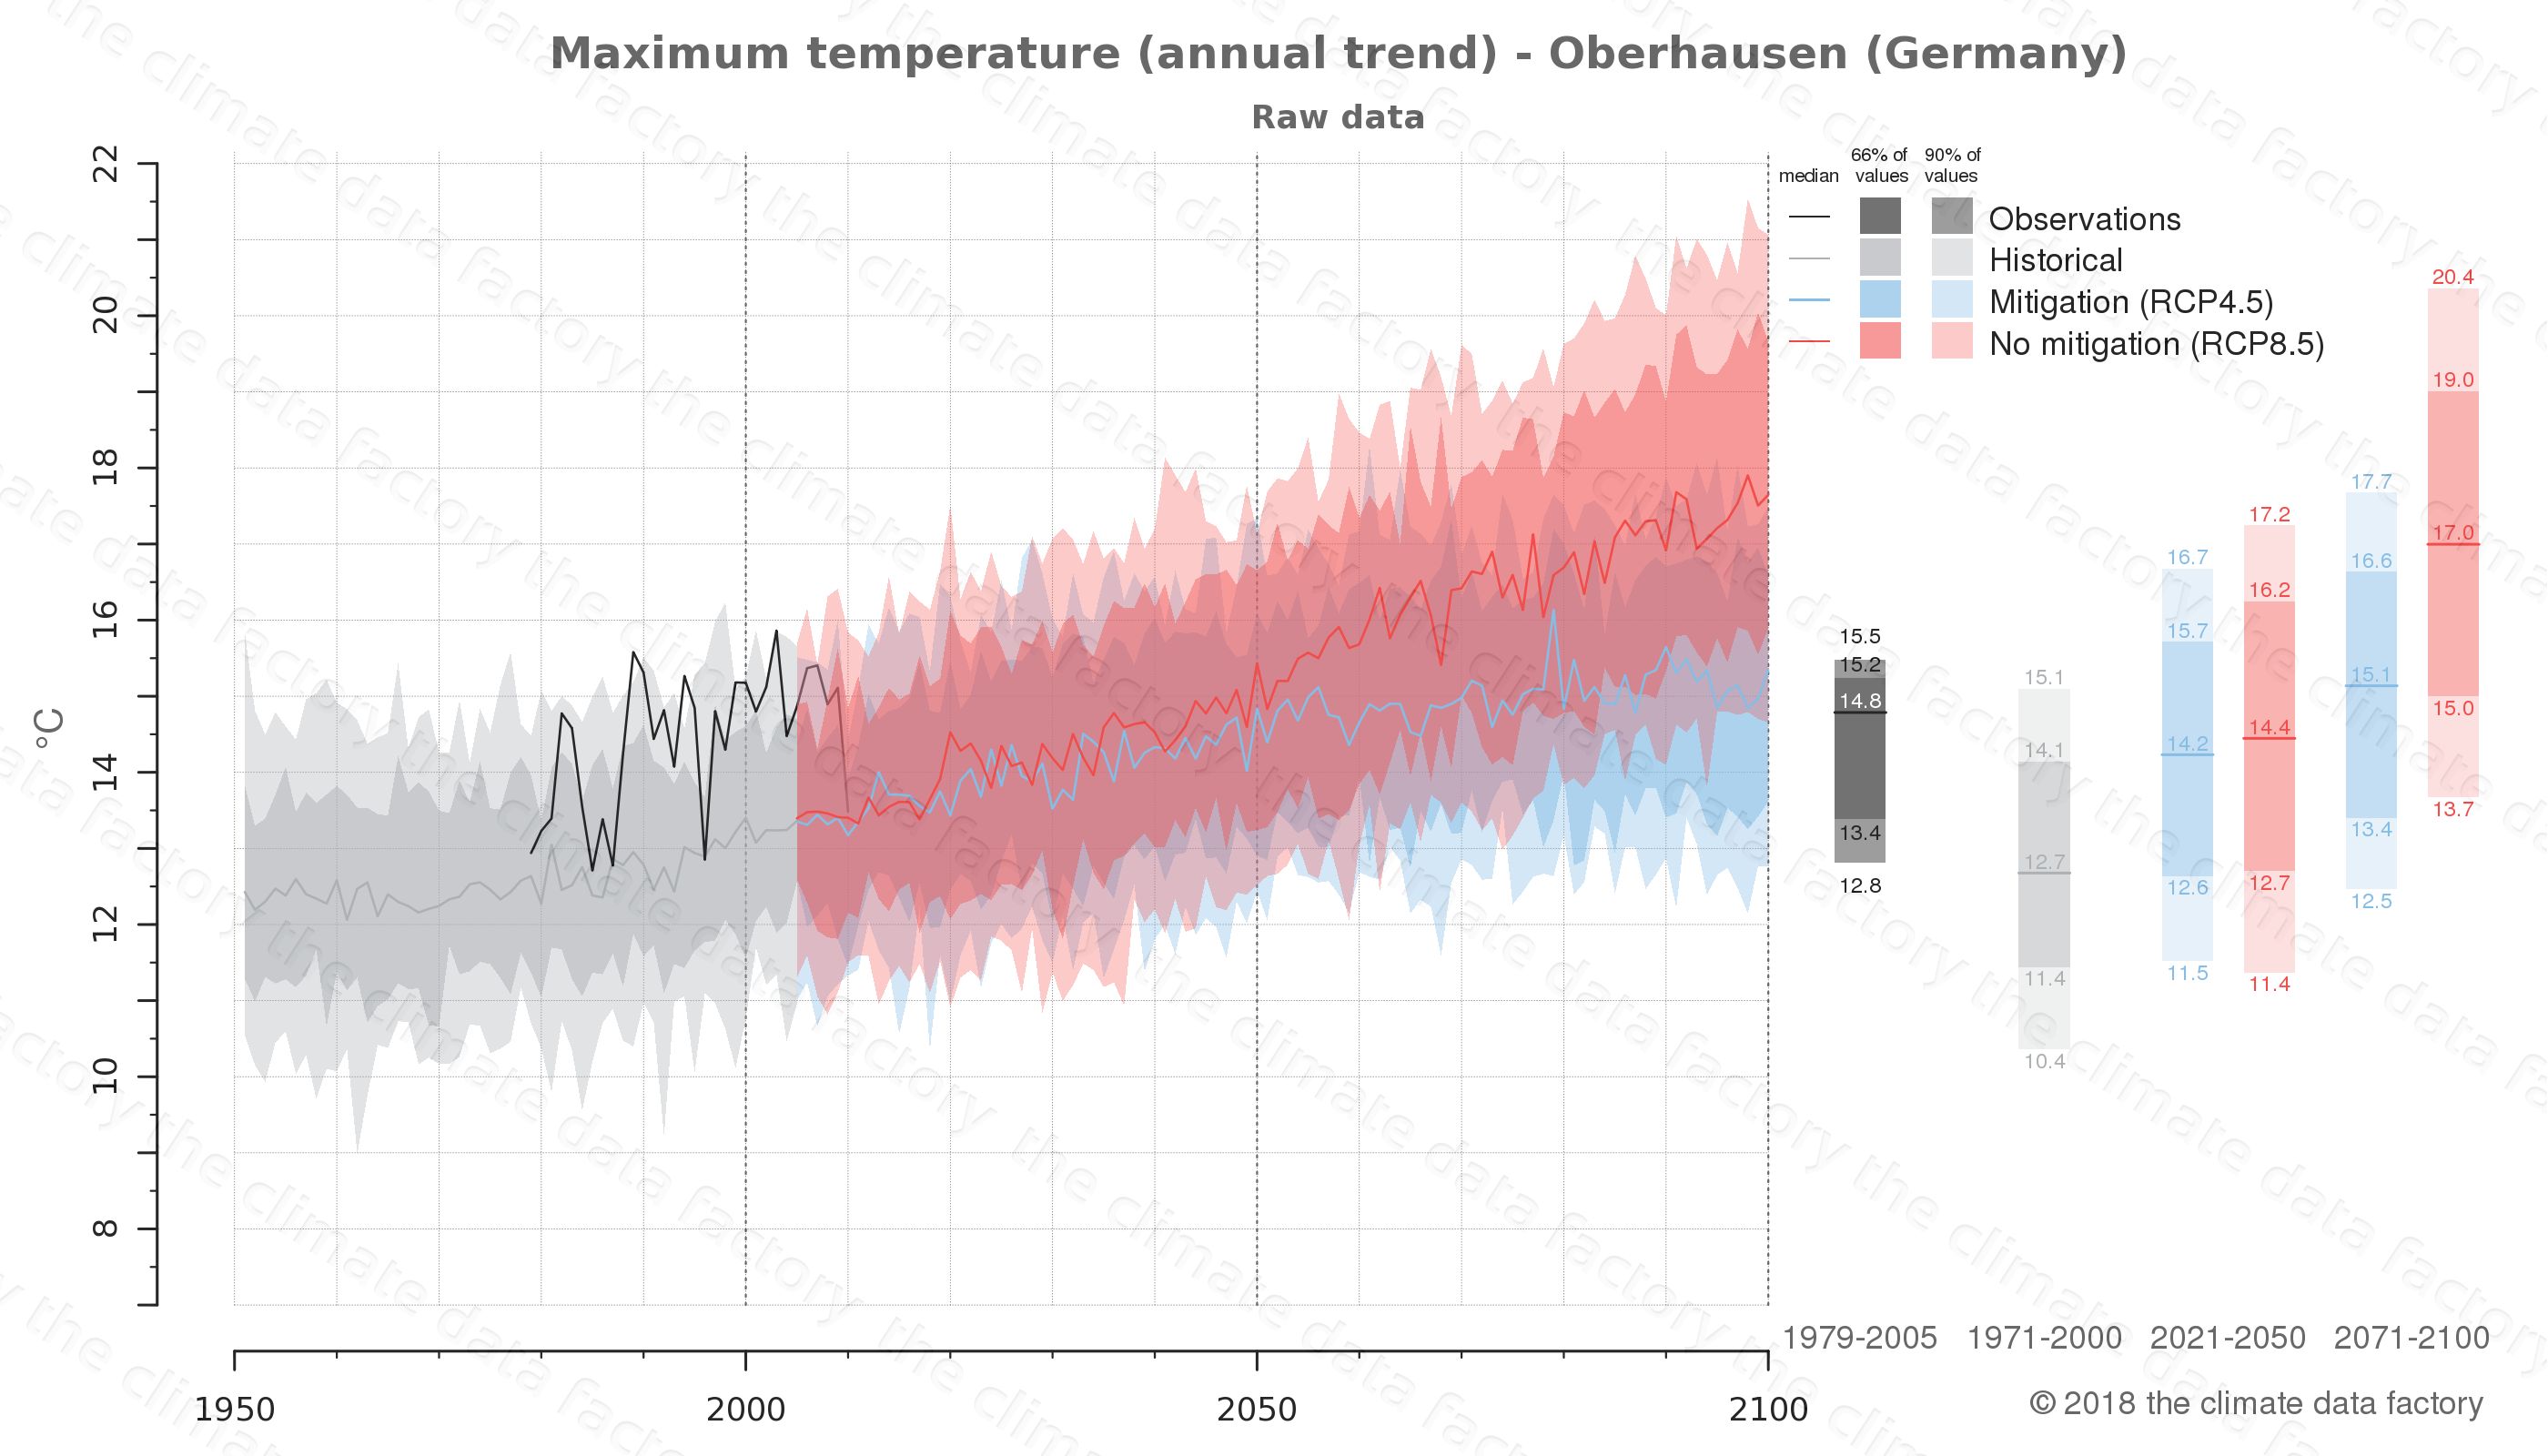 climate change data policy adaptation climate graph city data maximum-temperature oberhausen germany